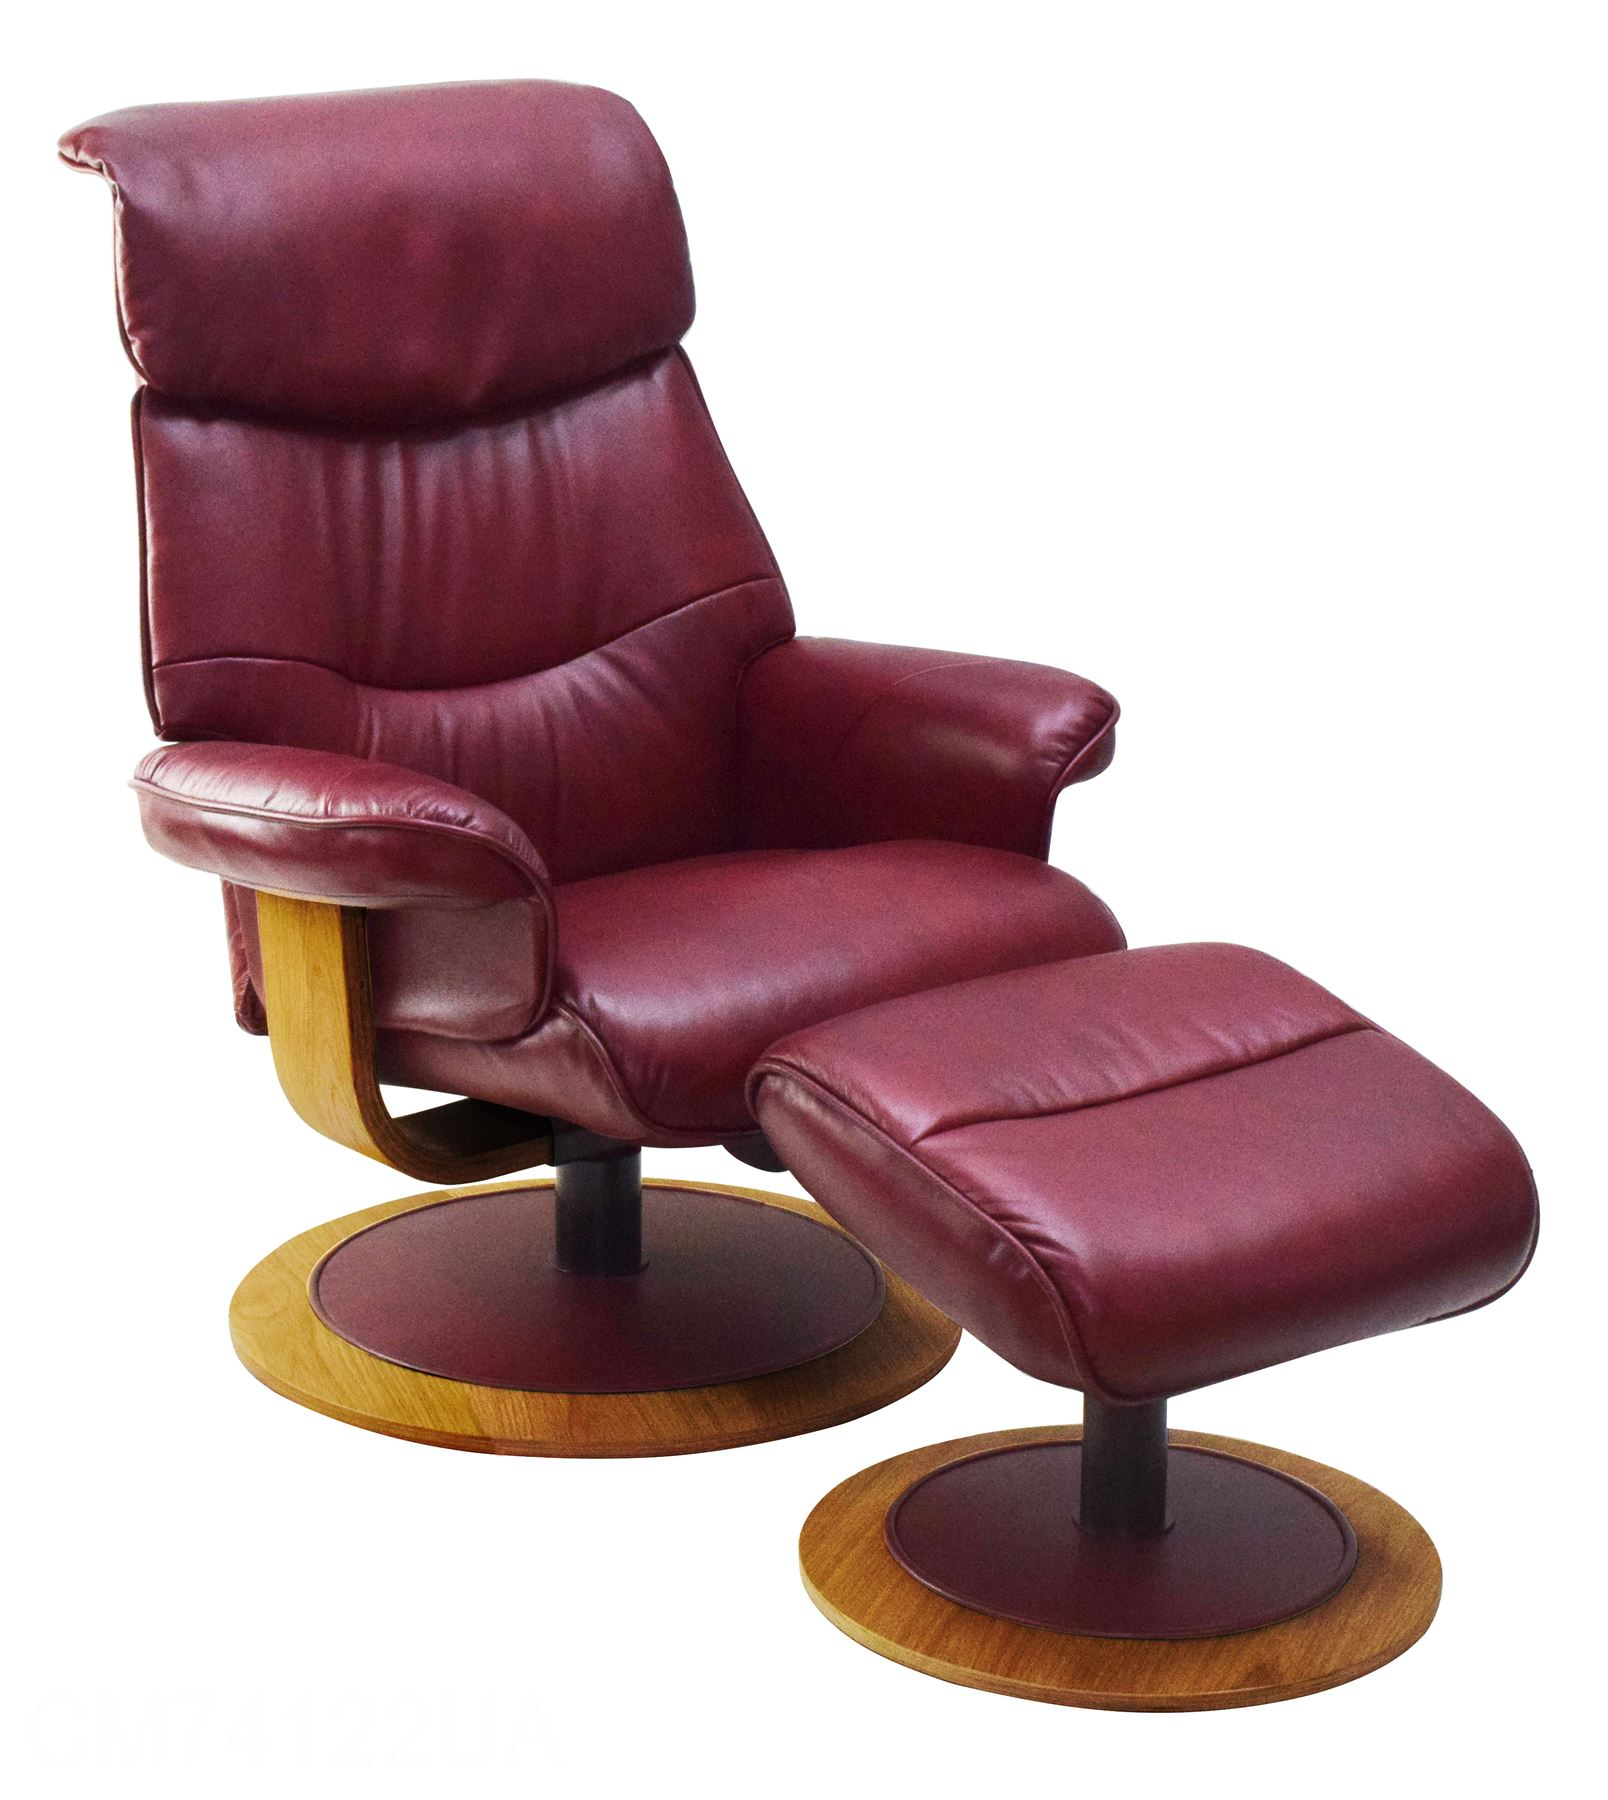 Red Leather Swivel Chair Details About The Chartwell Leather Swivel Recliner Chair Matching Footstool In Ruby Red